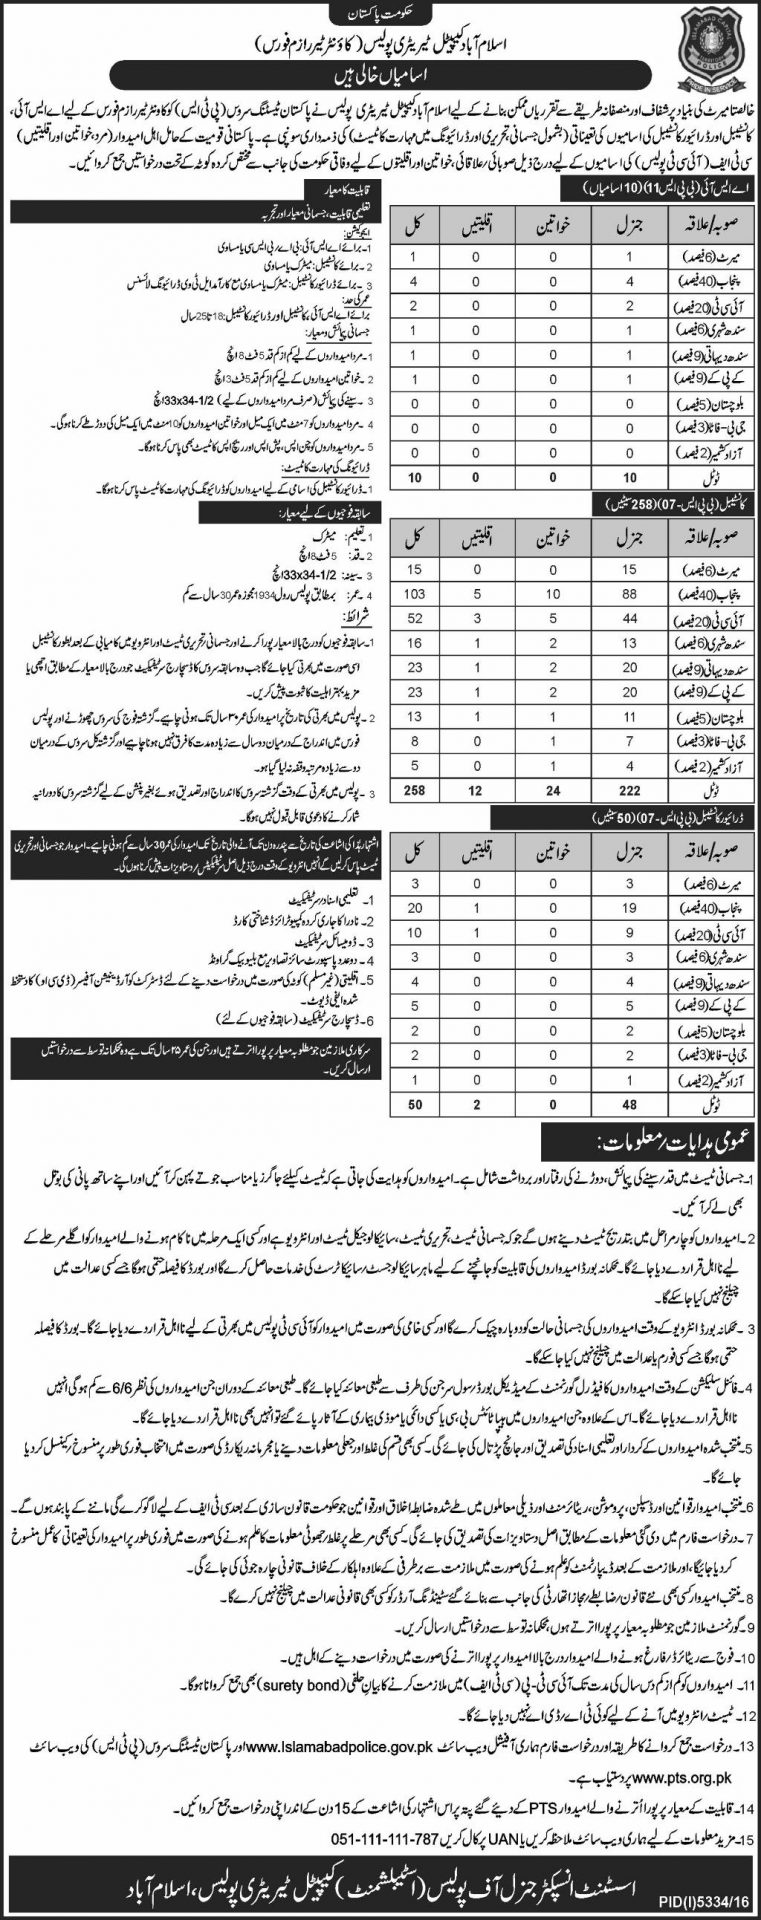 Islamabad Police Jobs 2017 ASI, Constable, Driver Eligibility PTS Last Date